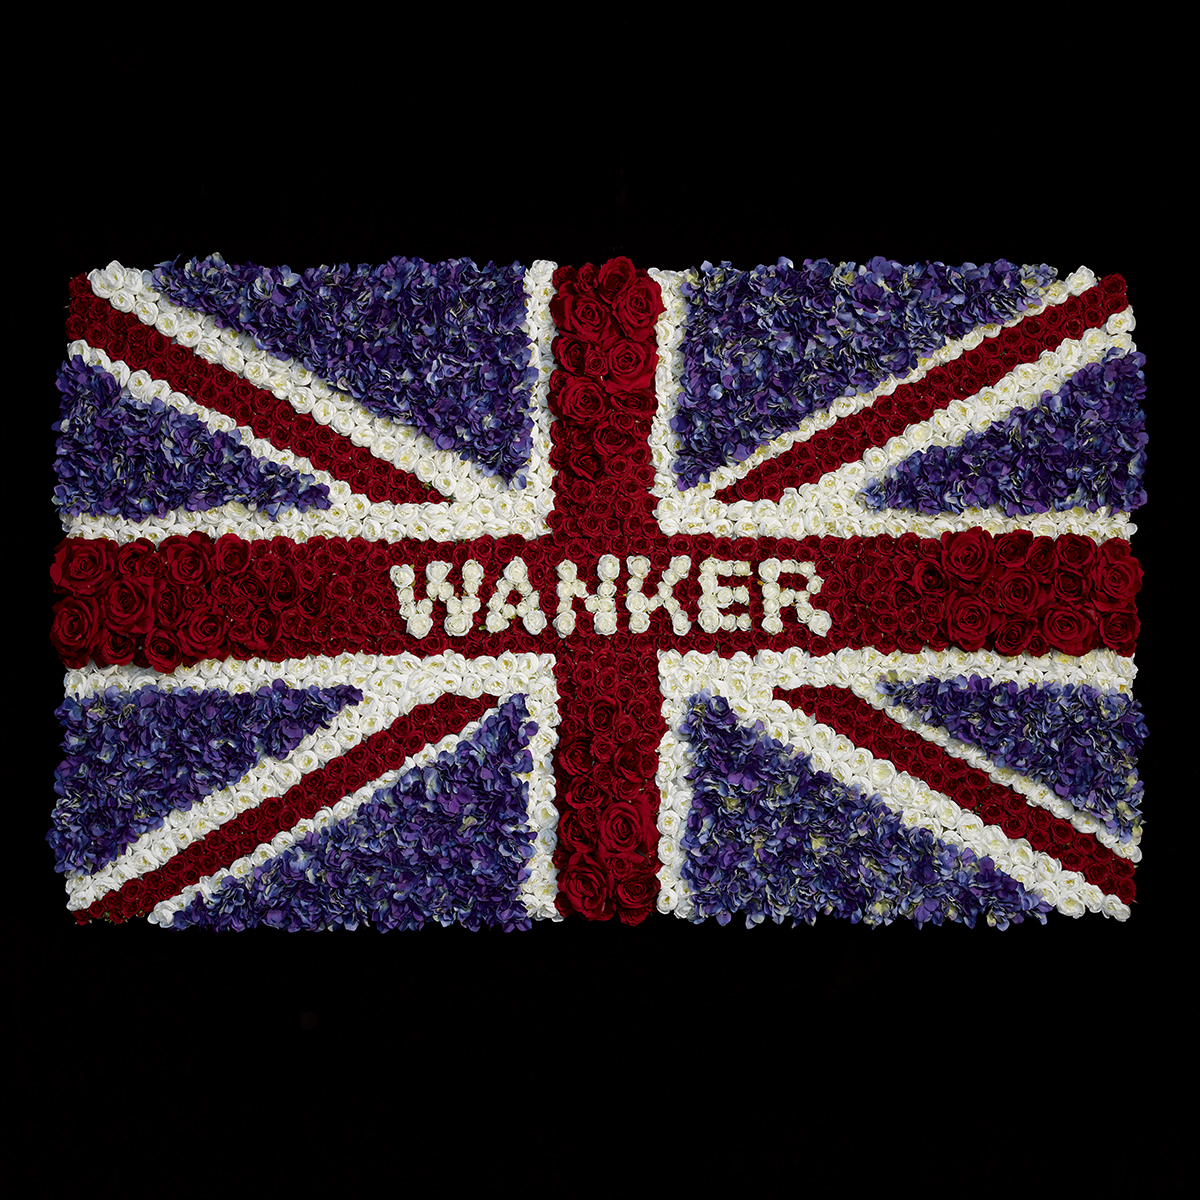 WANKER/ In Memory of Ex-Foreign Ministers.